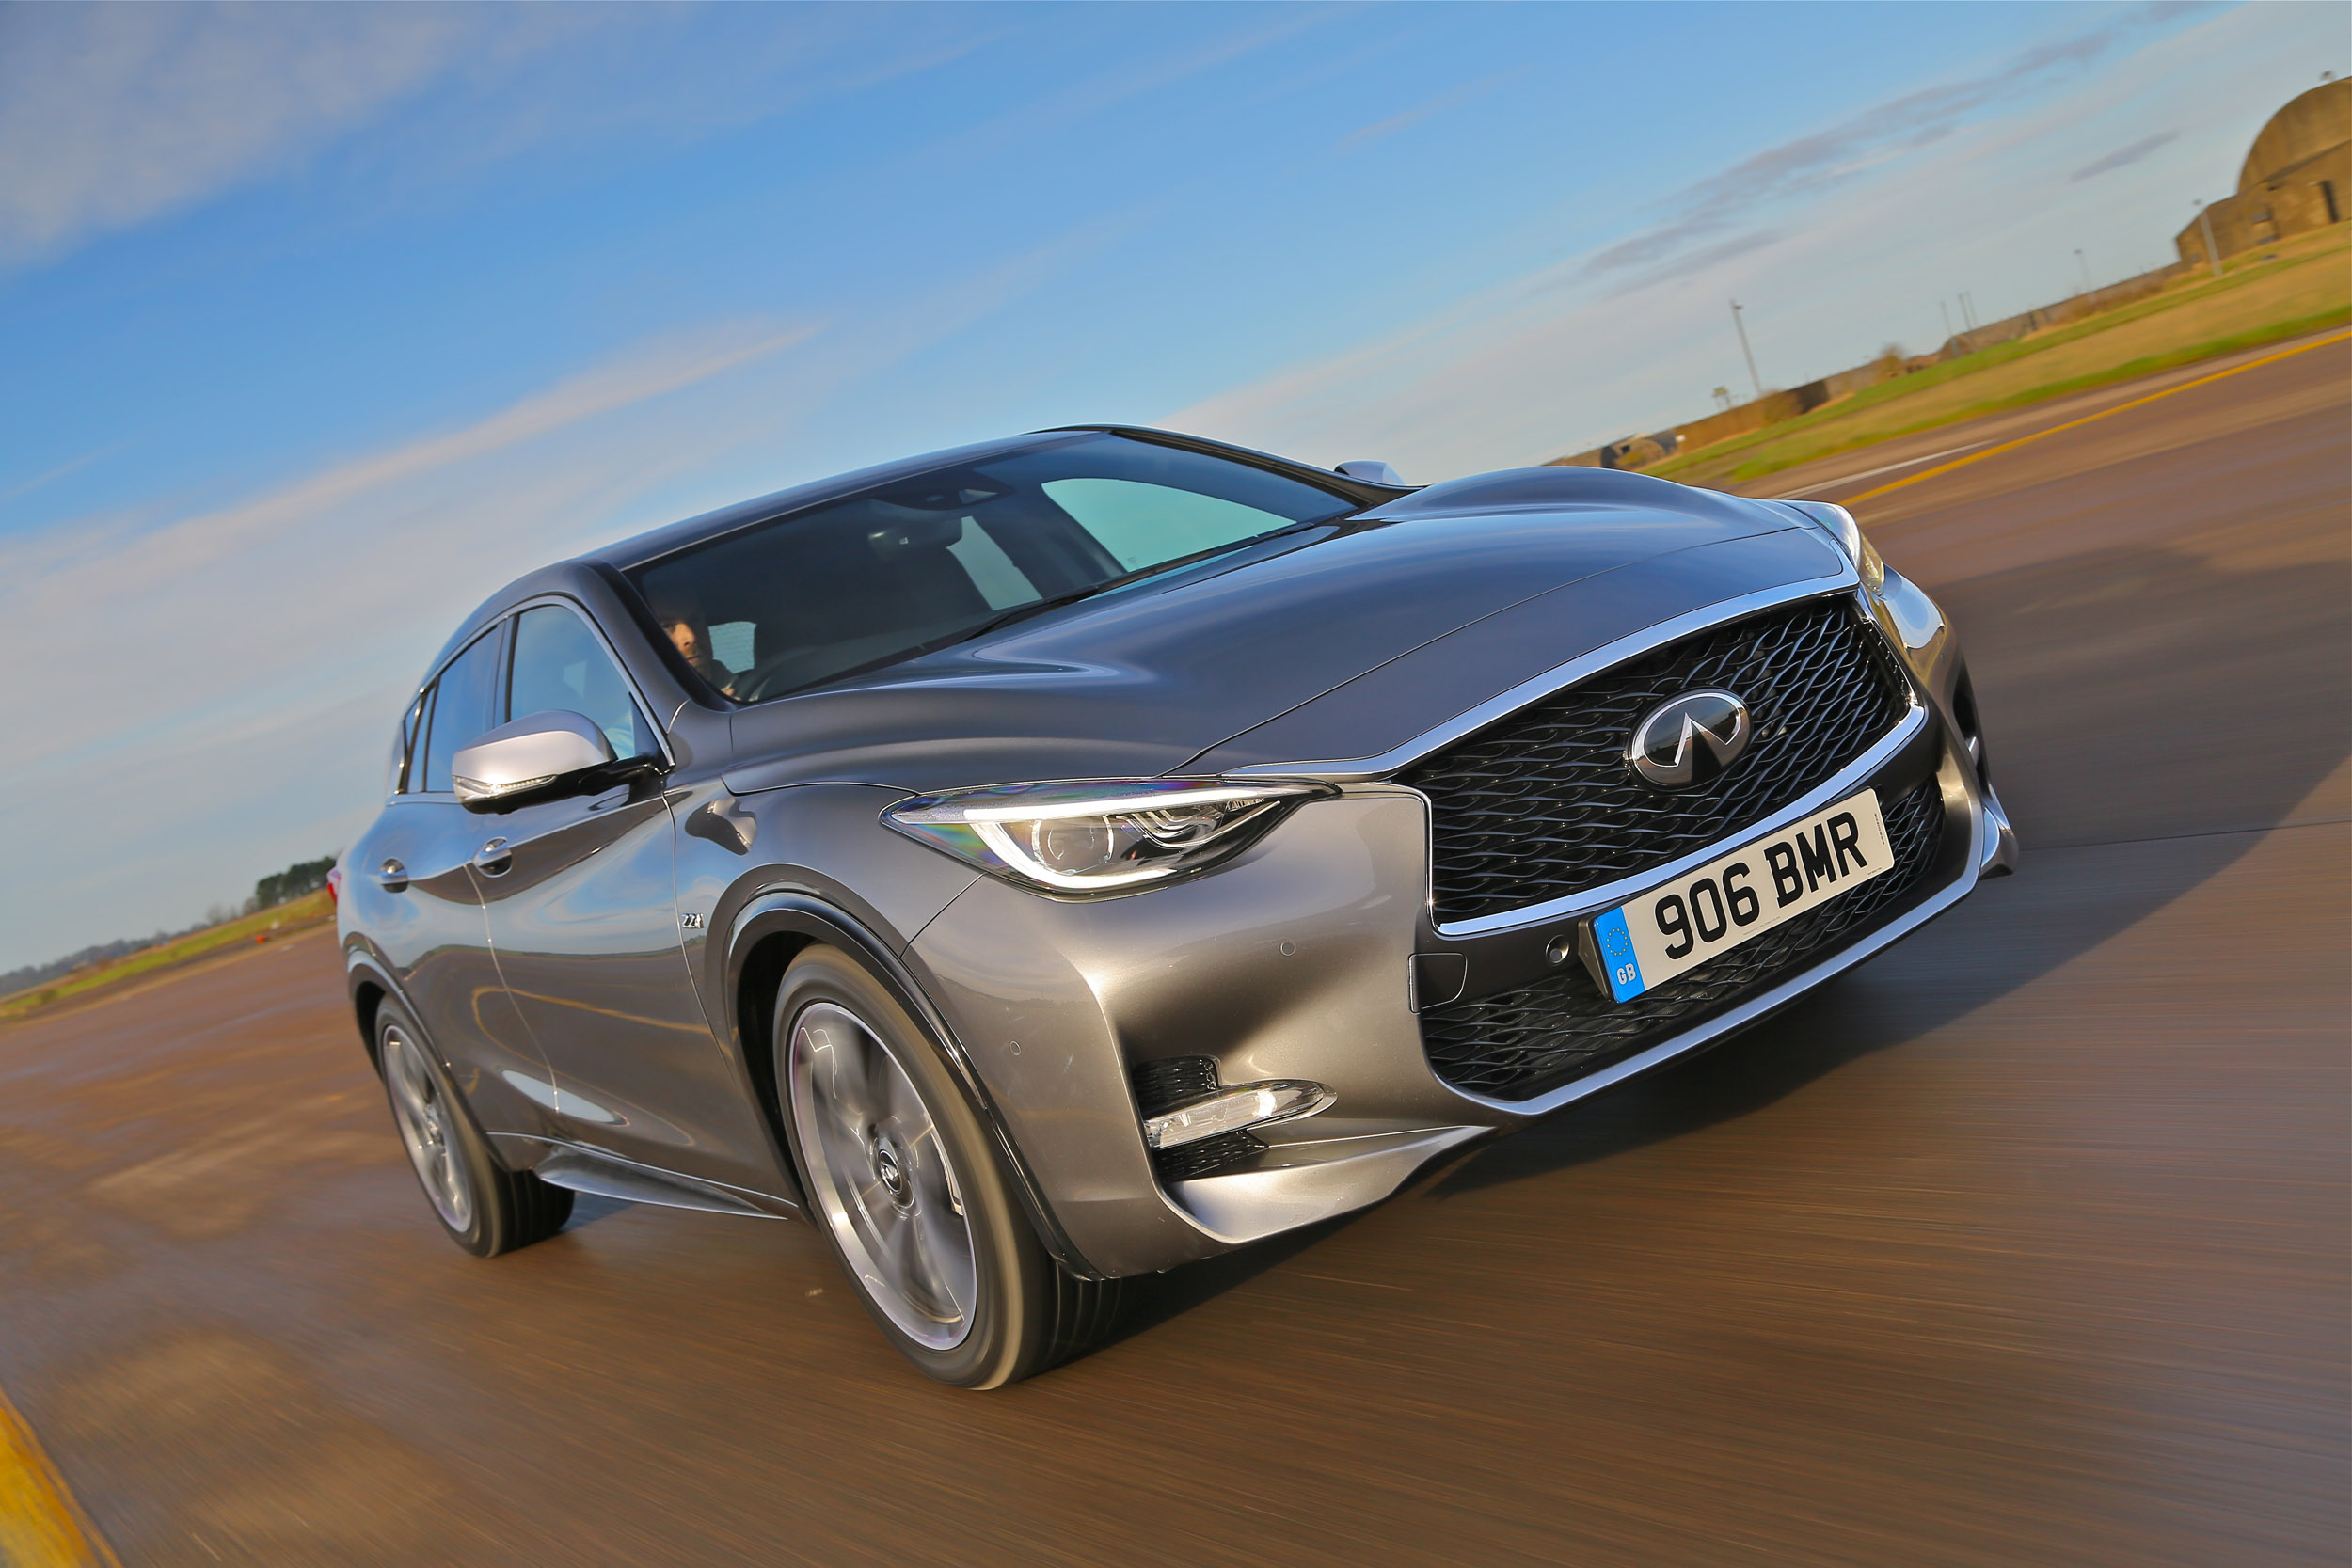 Infiniti Q30 review - Japanese premium compact takes on